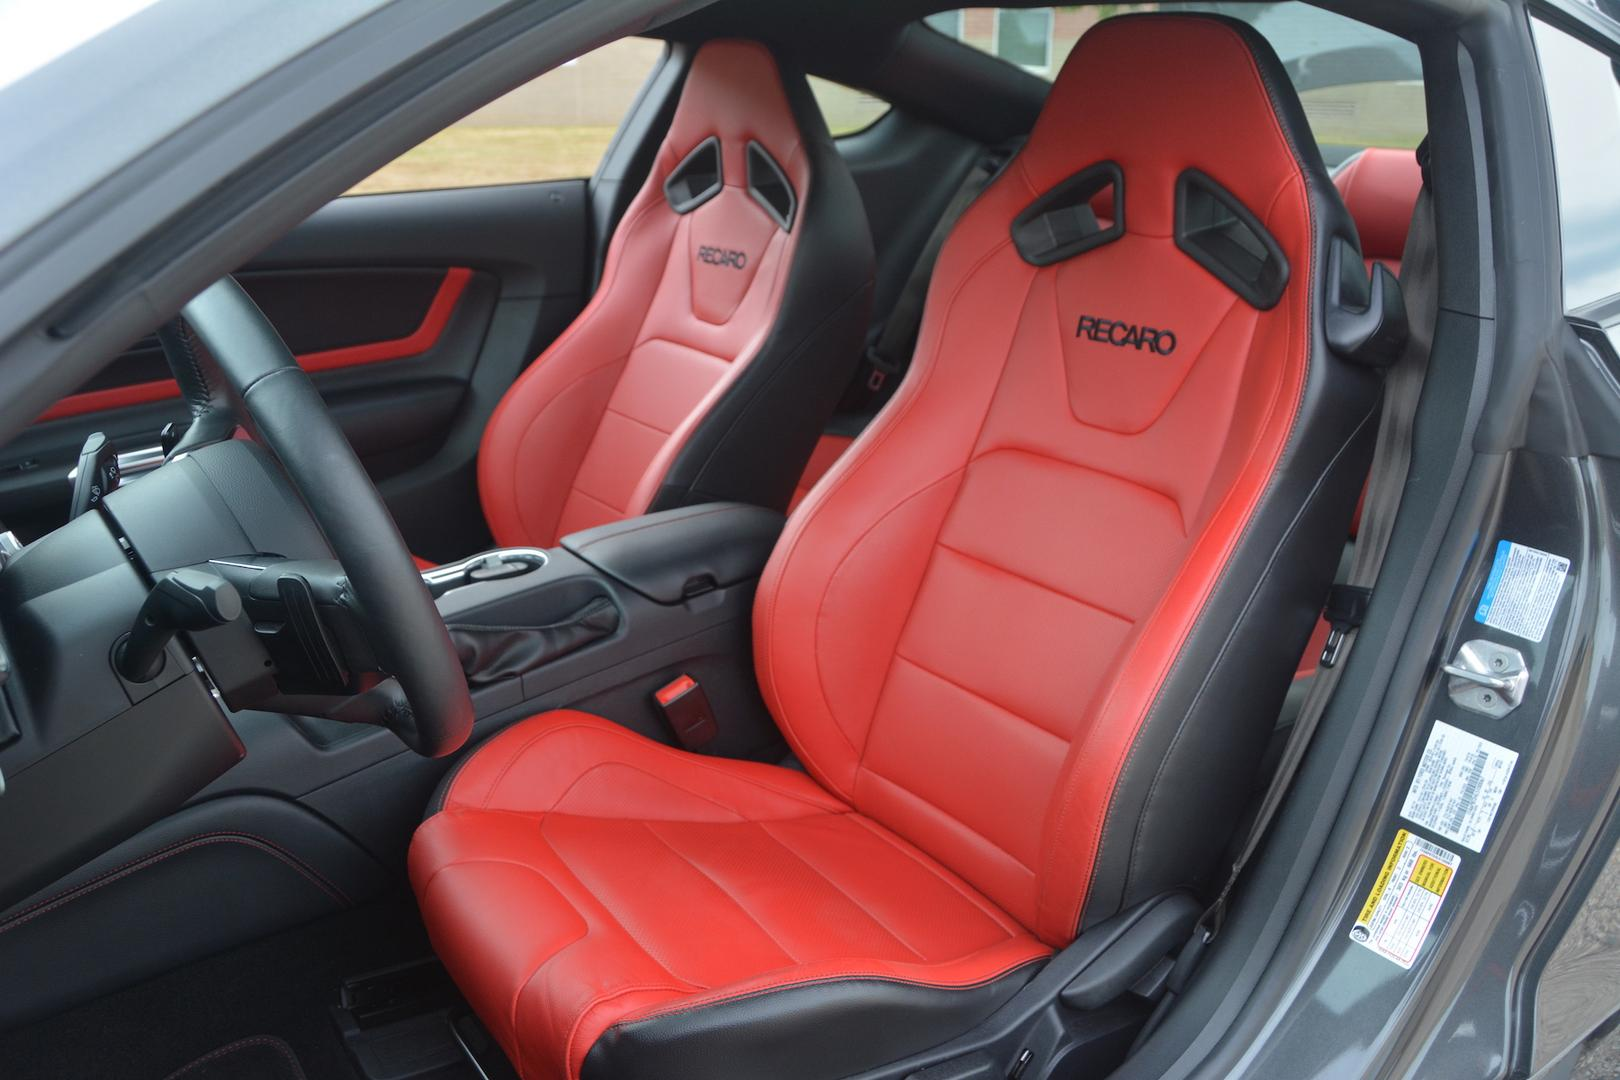 Ford Mustang EcoBoost Seats